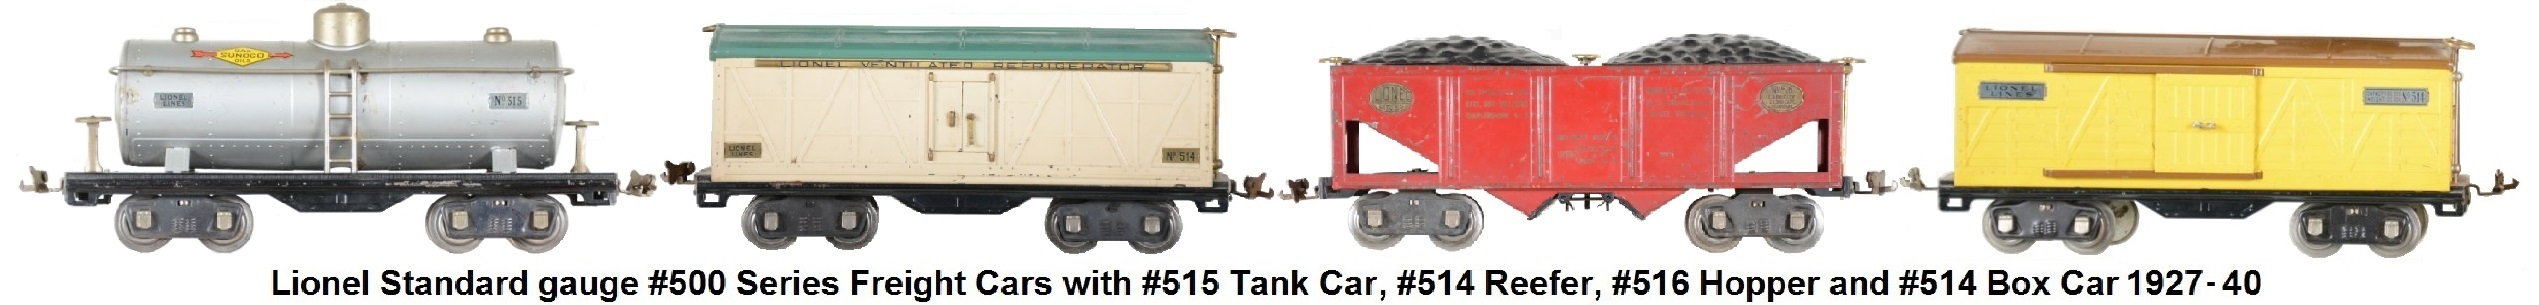 Lionel #500 series Standard gauge freights includes #515 tank car from 1927, #514 reefer, #516 Hopper, and #514 box car